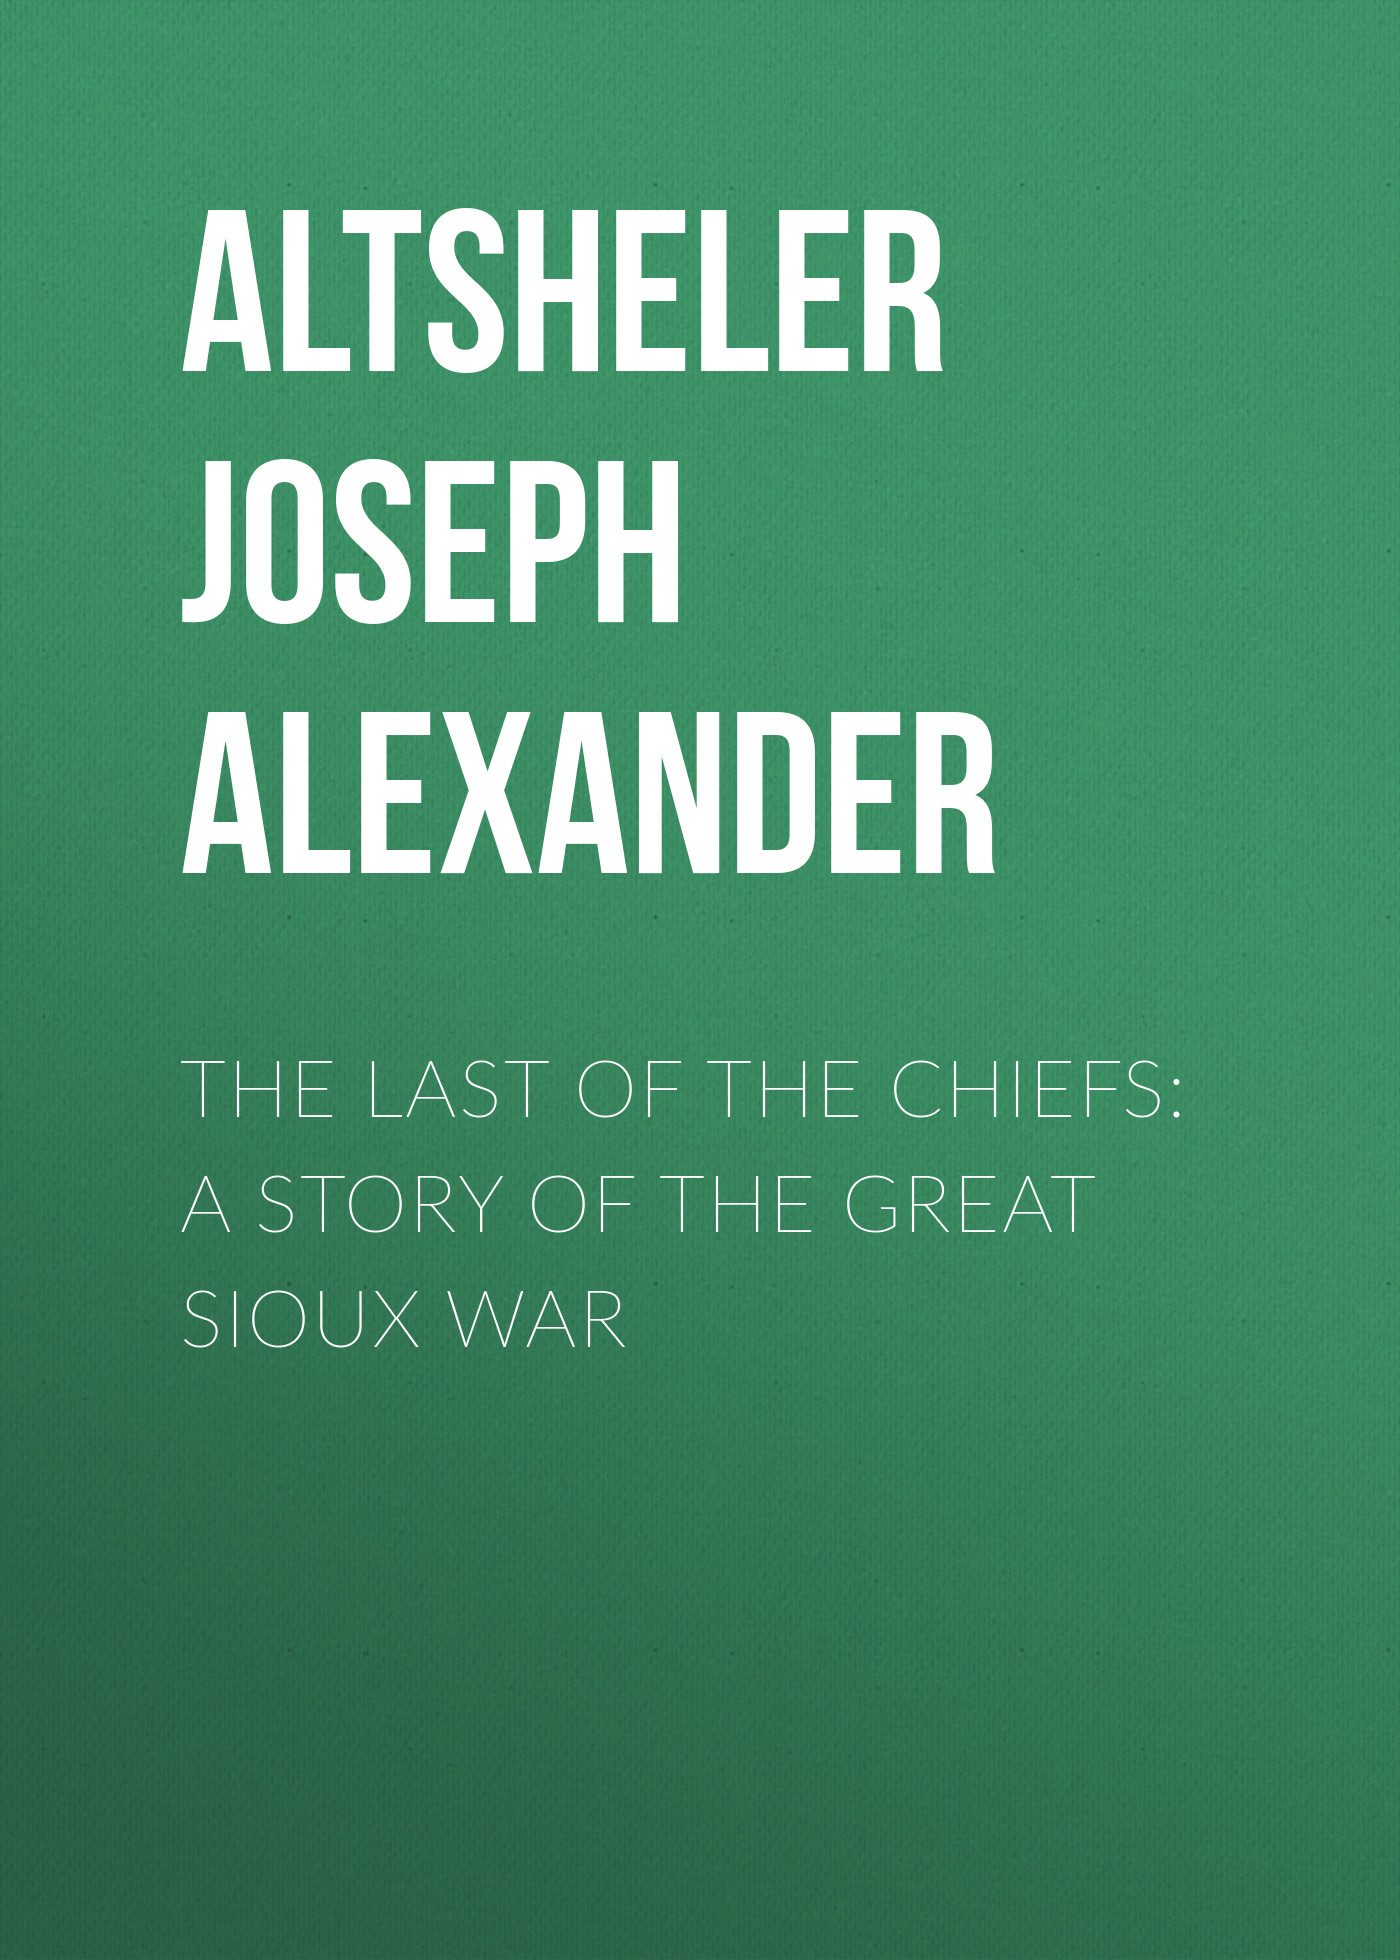 Altsheler Joseph Alexander The Last of the Chiefs: A Story of the Great Sioux War лучший подарок для девочки комплект из 6 книг